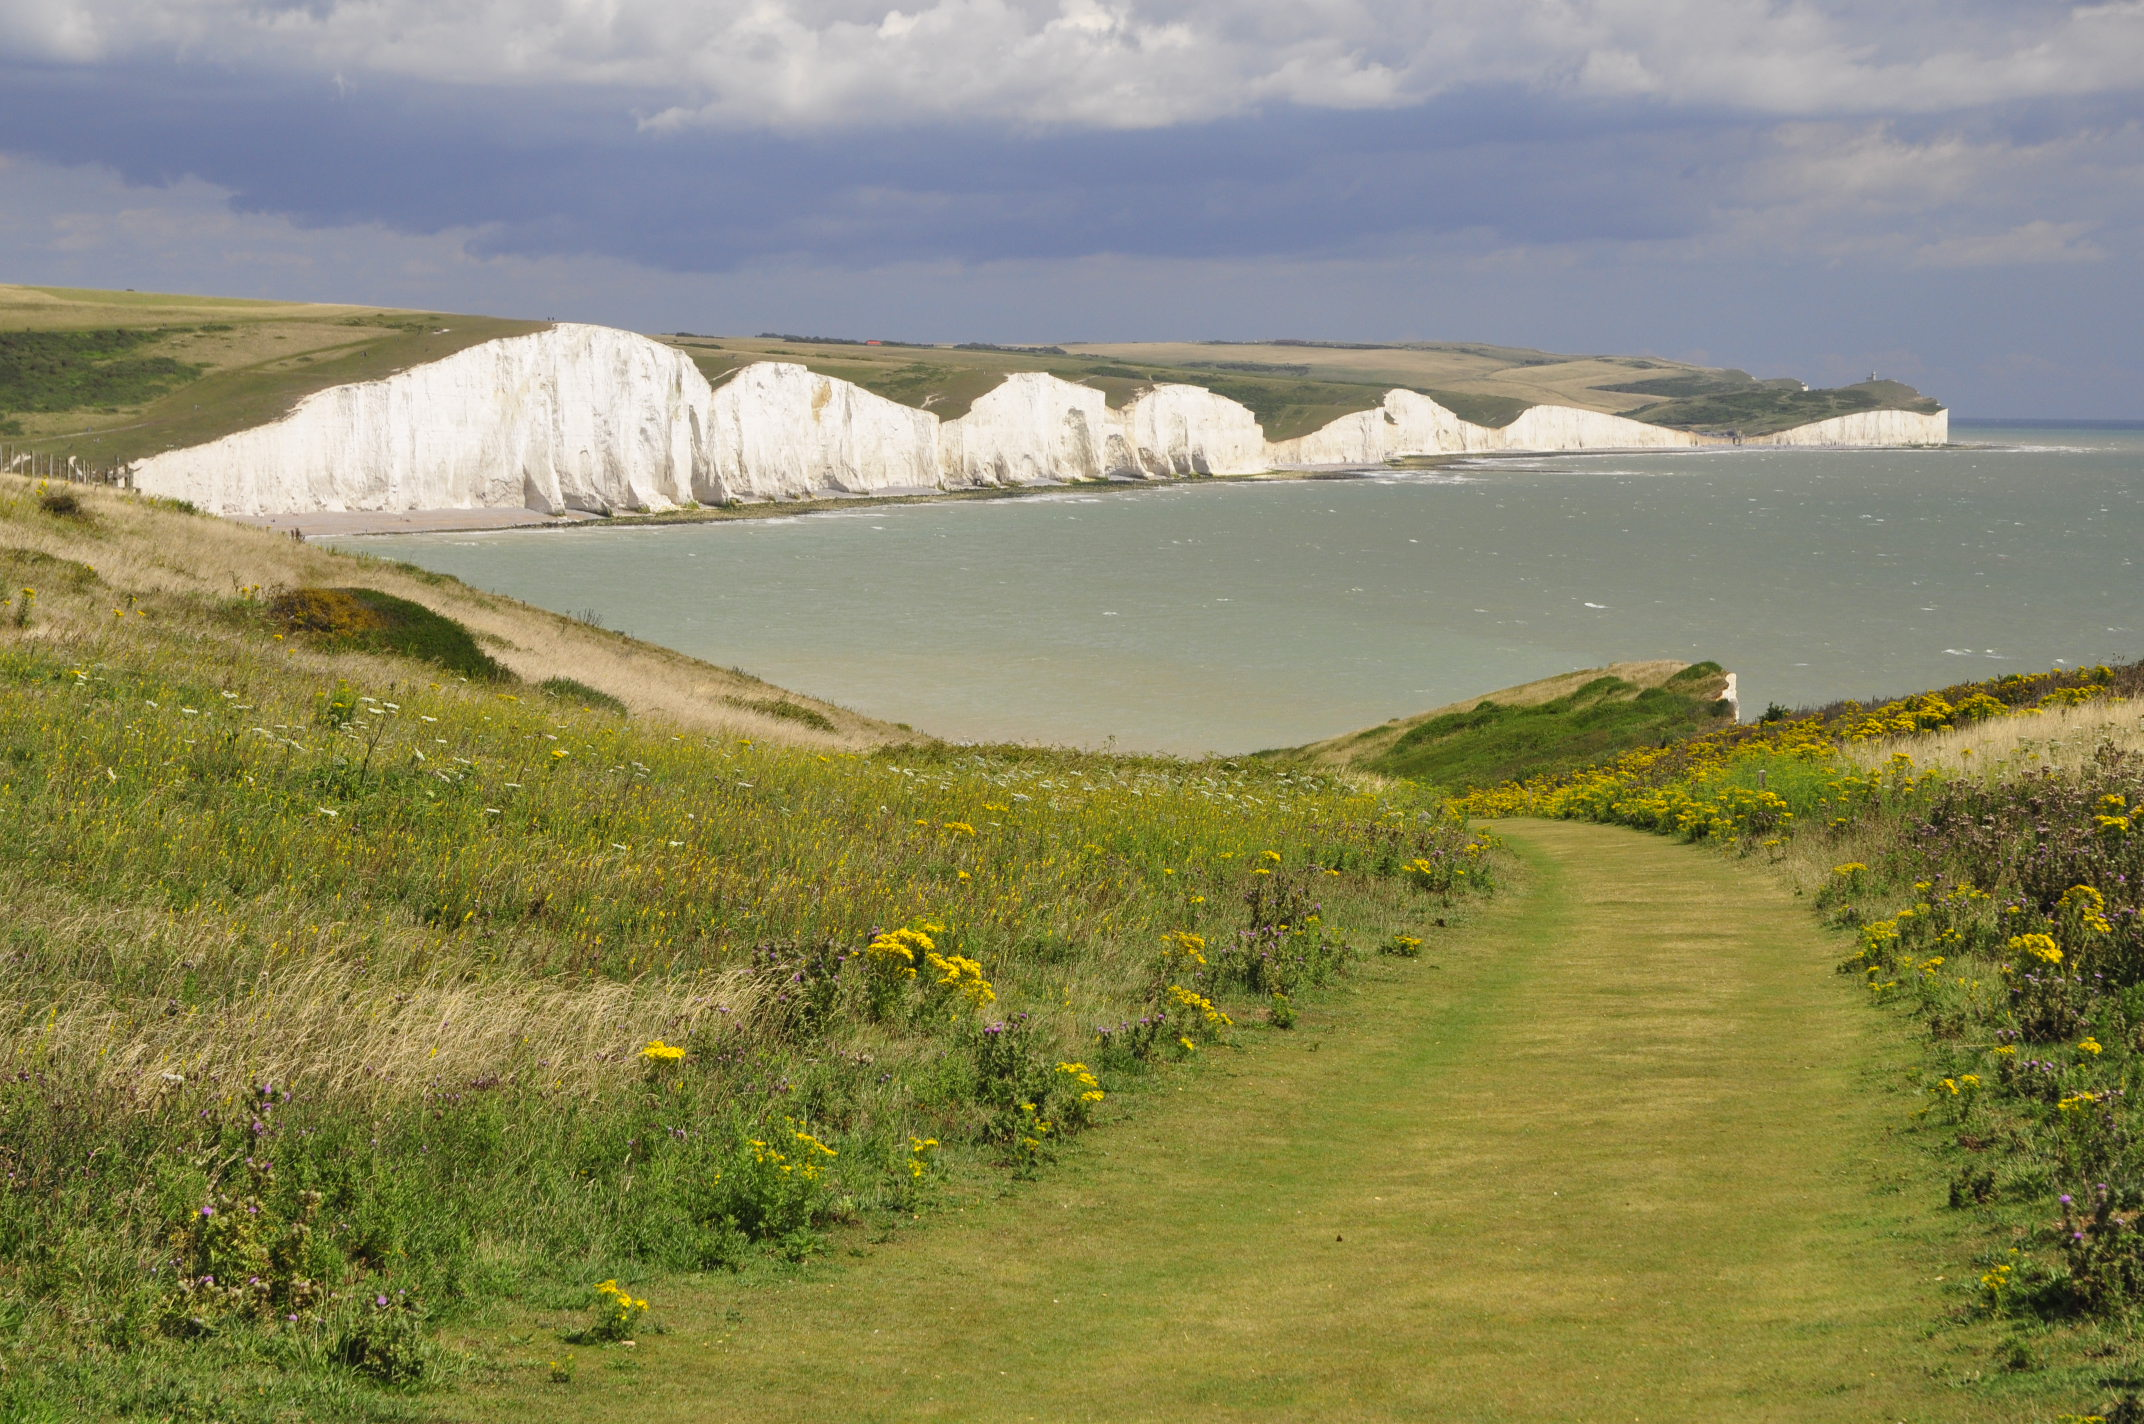 Rolling hills, green pastures, the steep white Seven Sisters cliffs - very English!